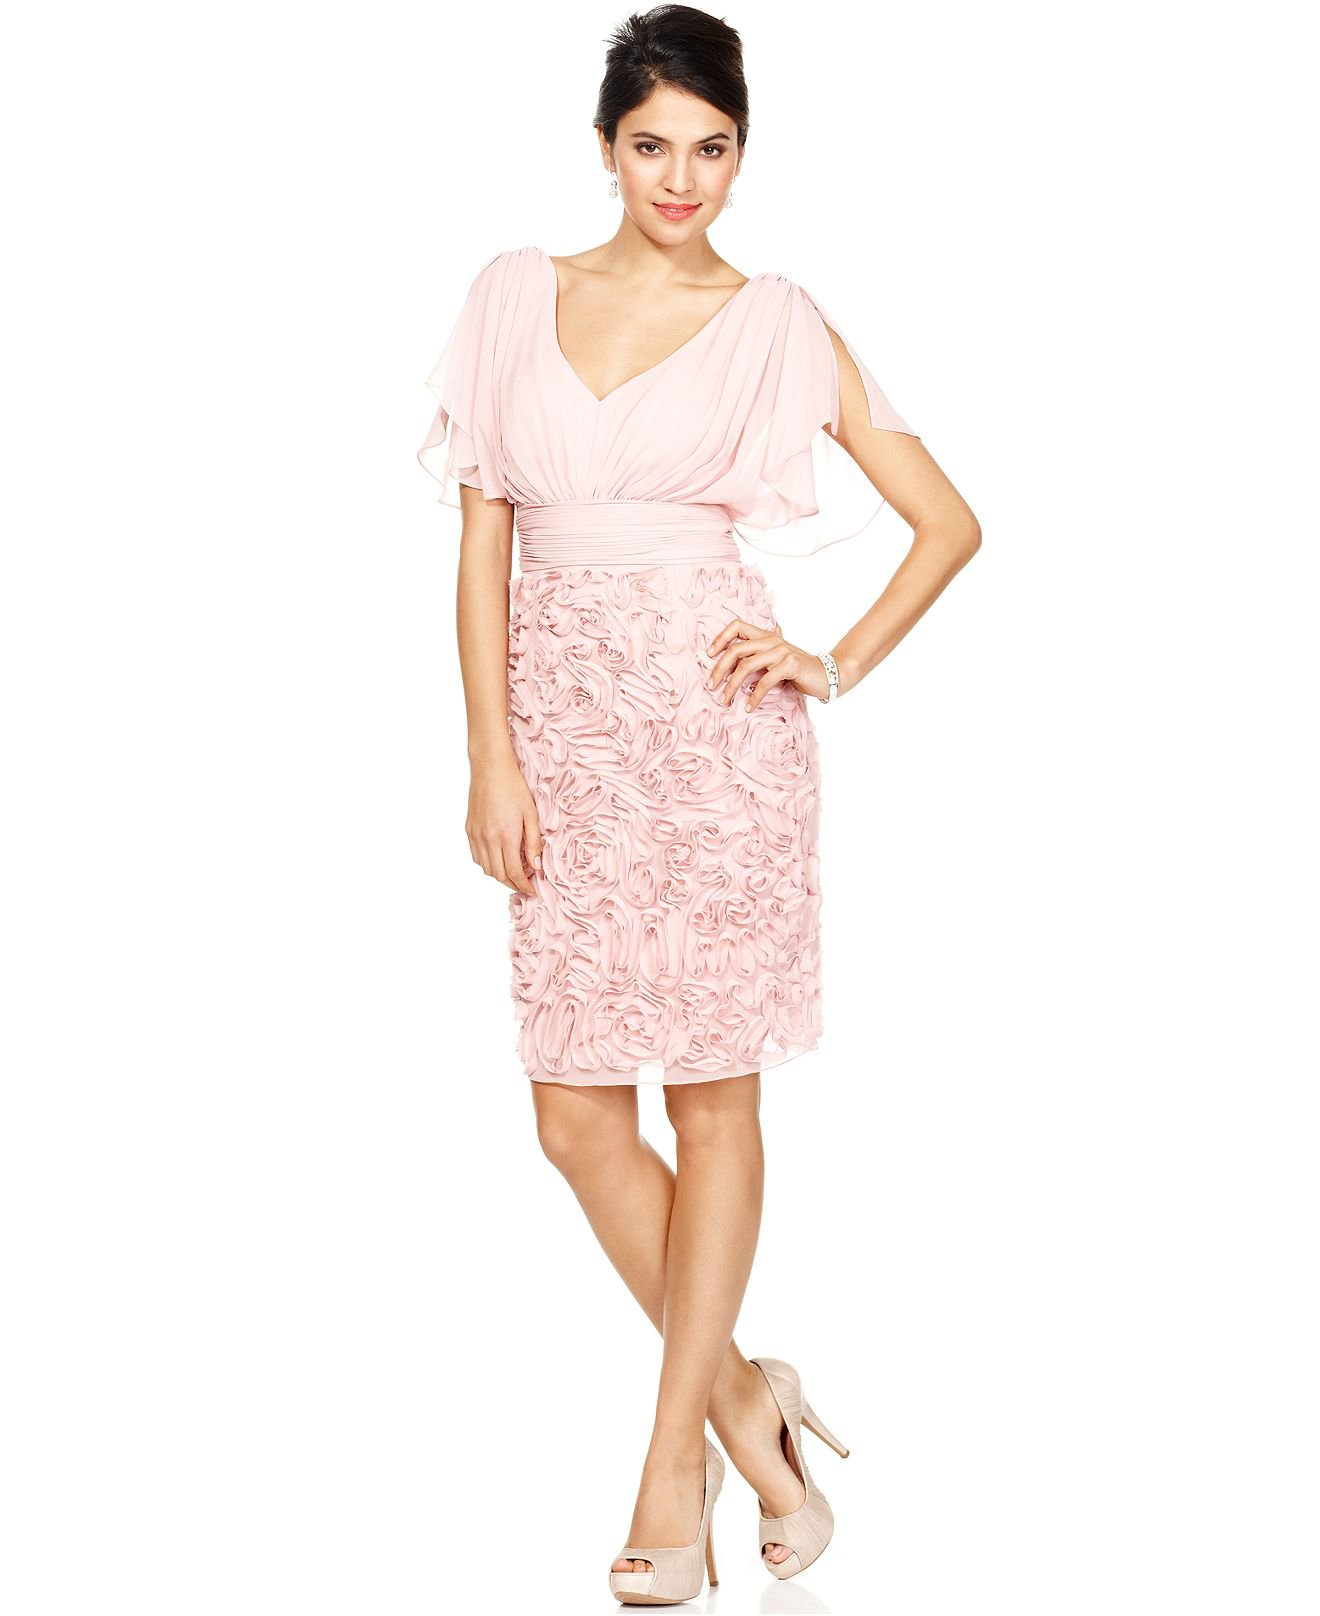 Js collections dress short split sleeve from macys for Macy s dresses for weddings